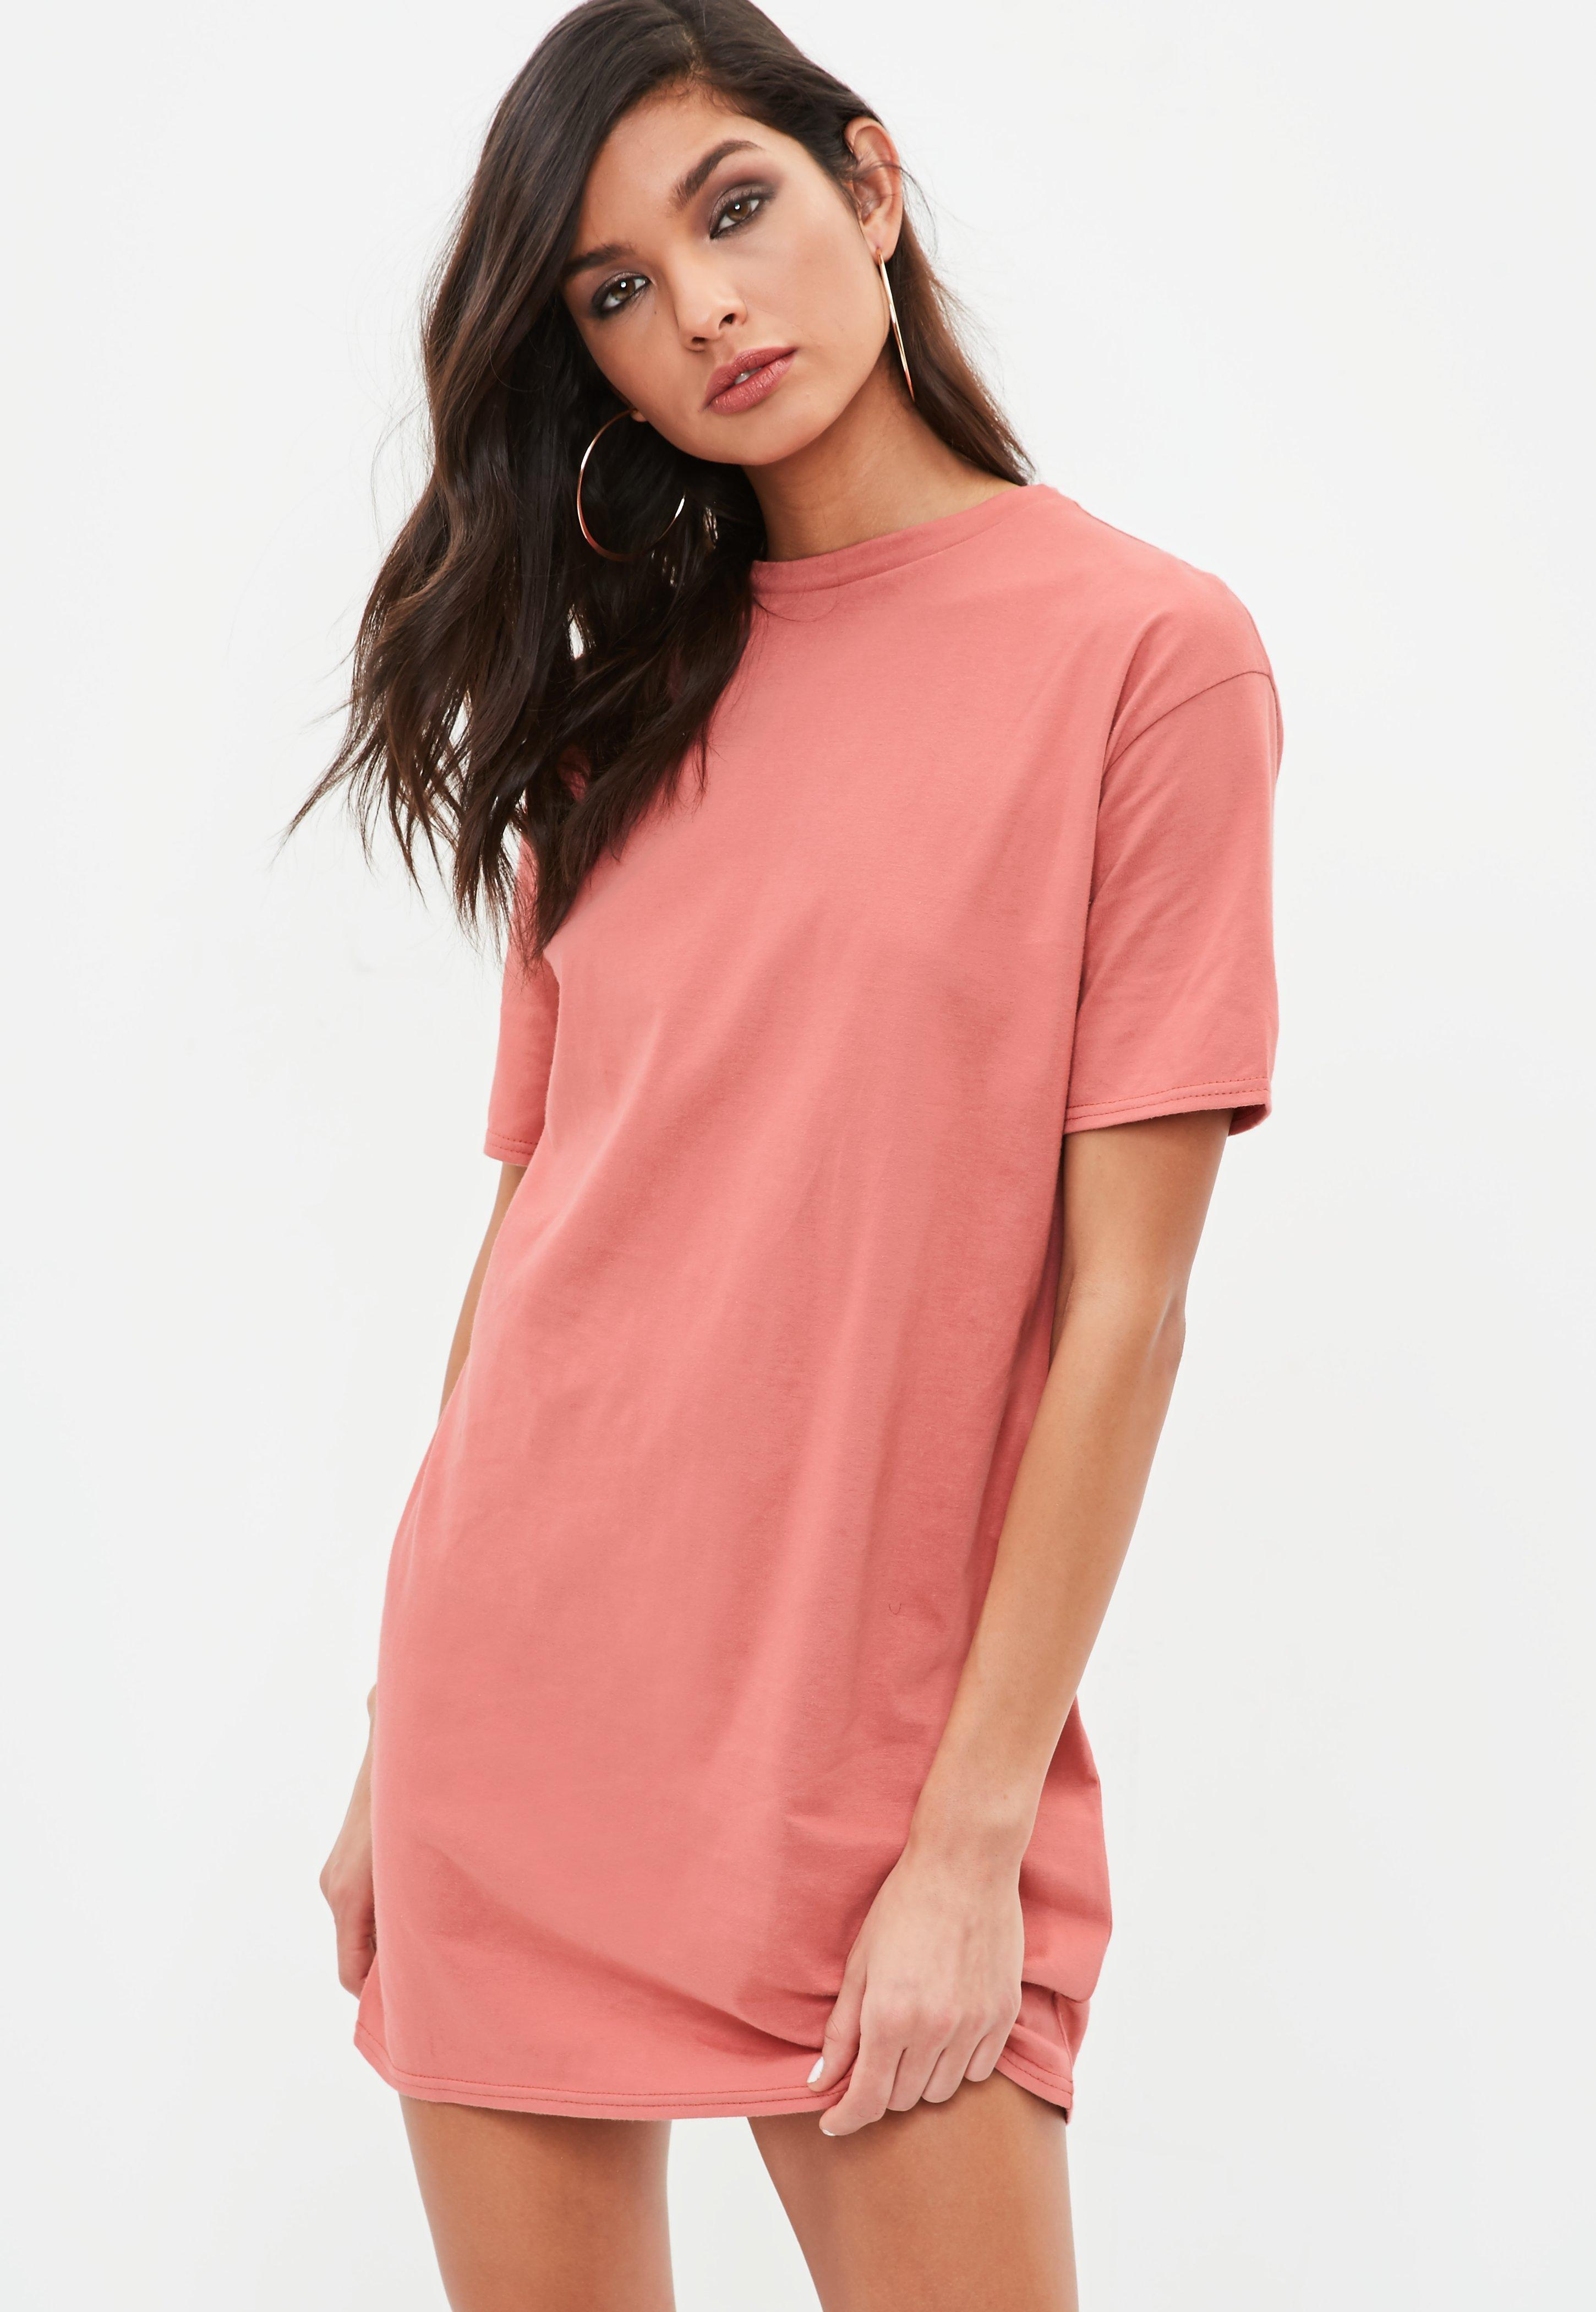 Missguided Pink Short Sleeve Crew Neck T-shirt Dress in ...